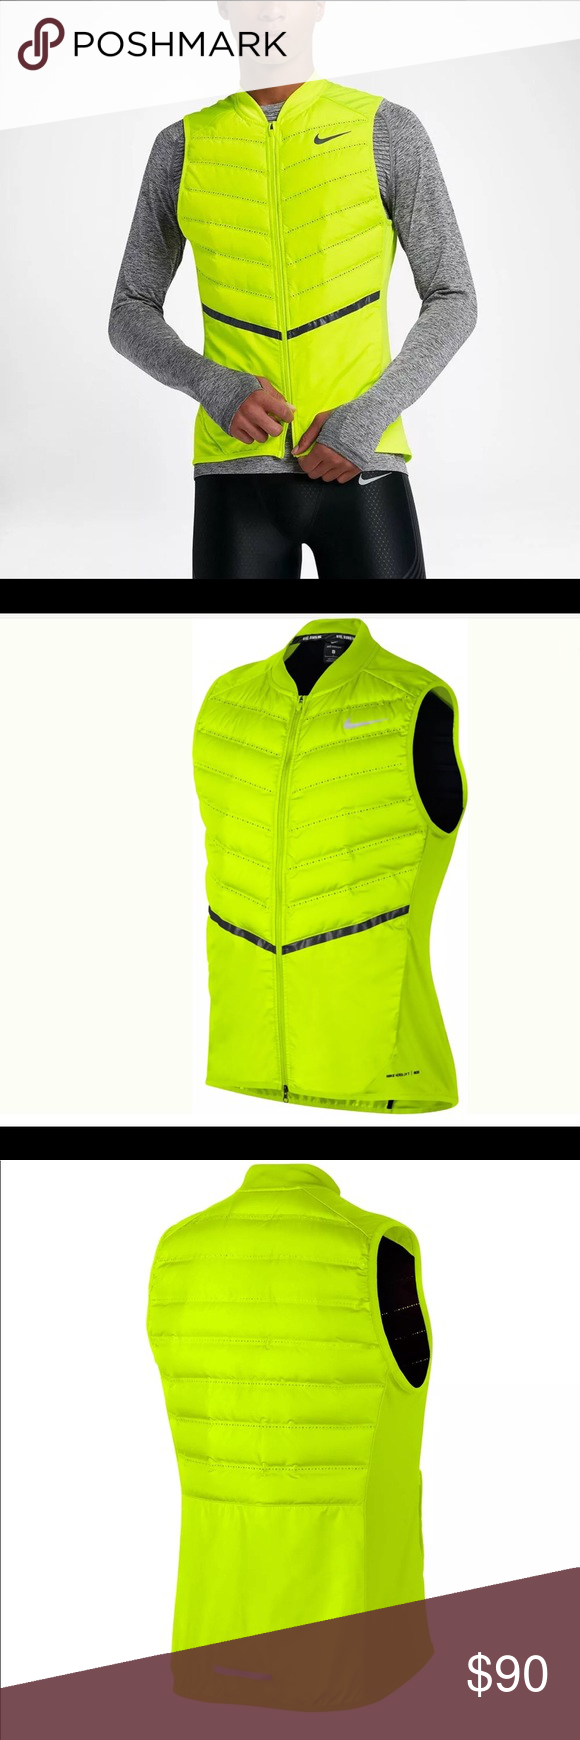 b5c0226db6af Nike Aeroloft Mens Running Vest Size Large Yellow Nike Aeroloft Mens  Running Vest Size Large Yellow NWT Goose Down Volt Style 800497 Lightweight  Ventilated ...